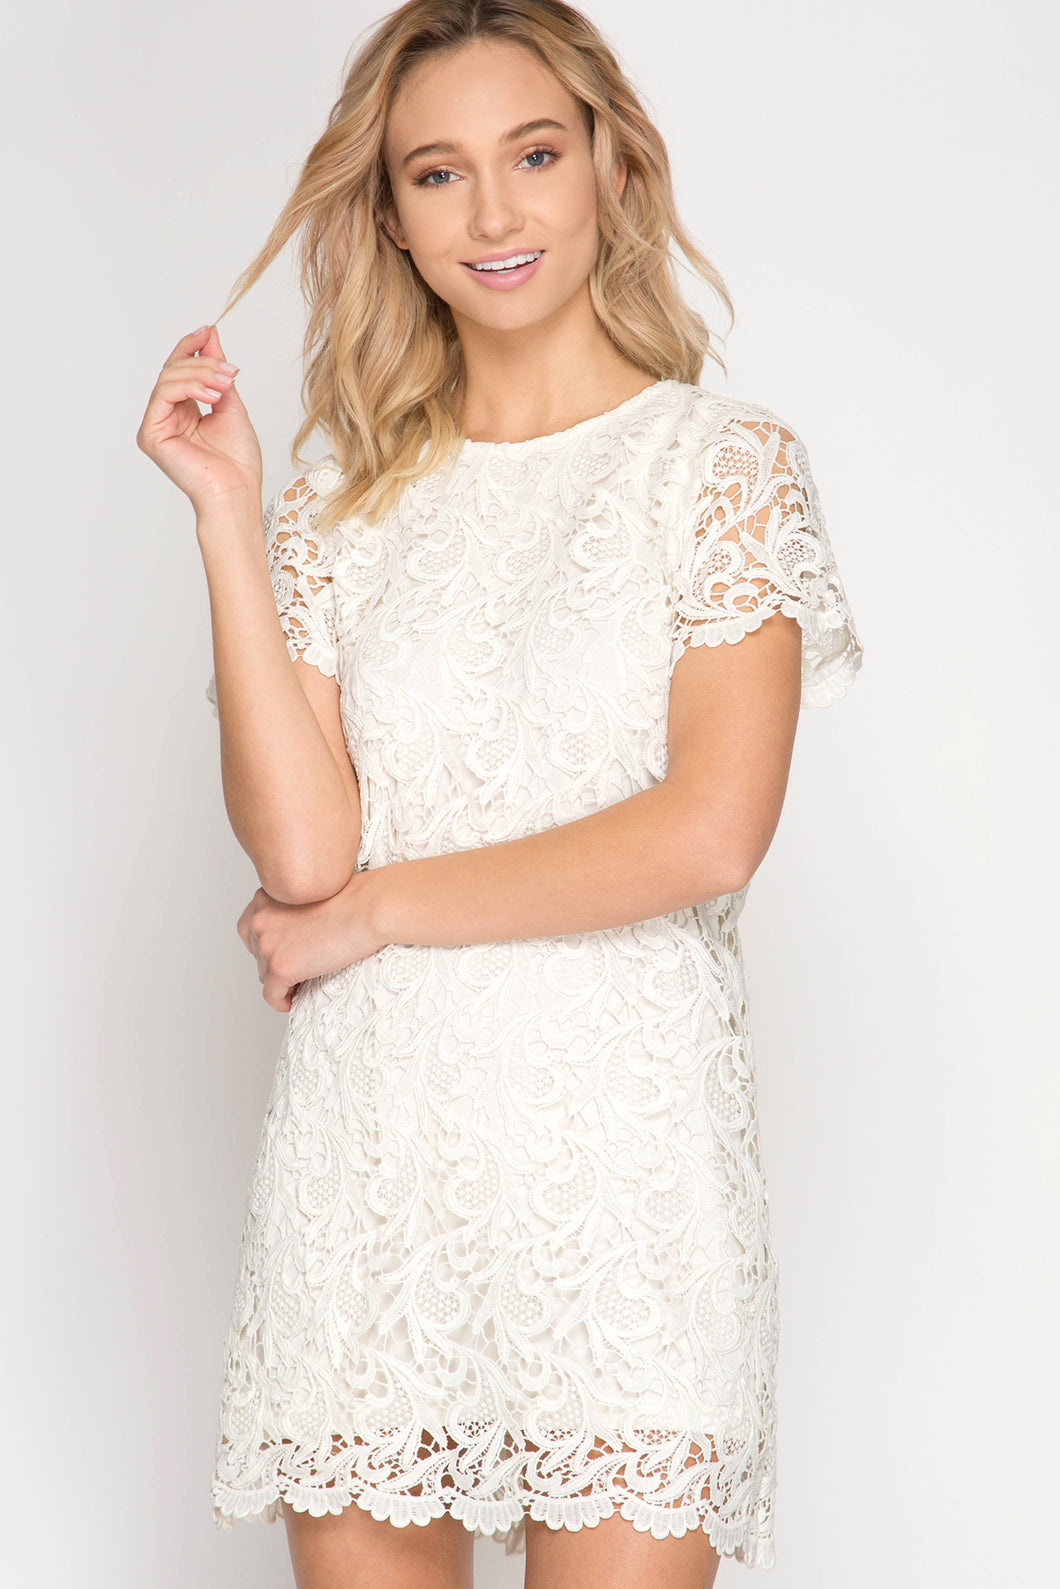 GD Cream Crochet Lace Shift Dress